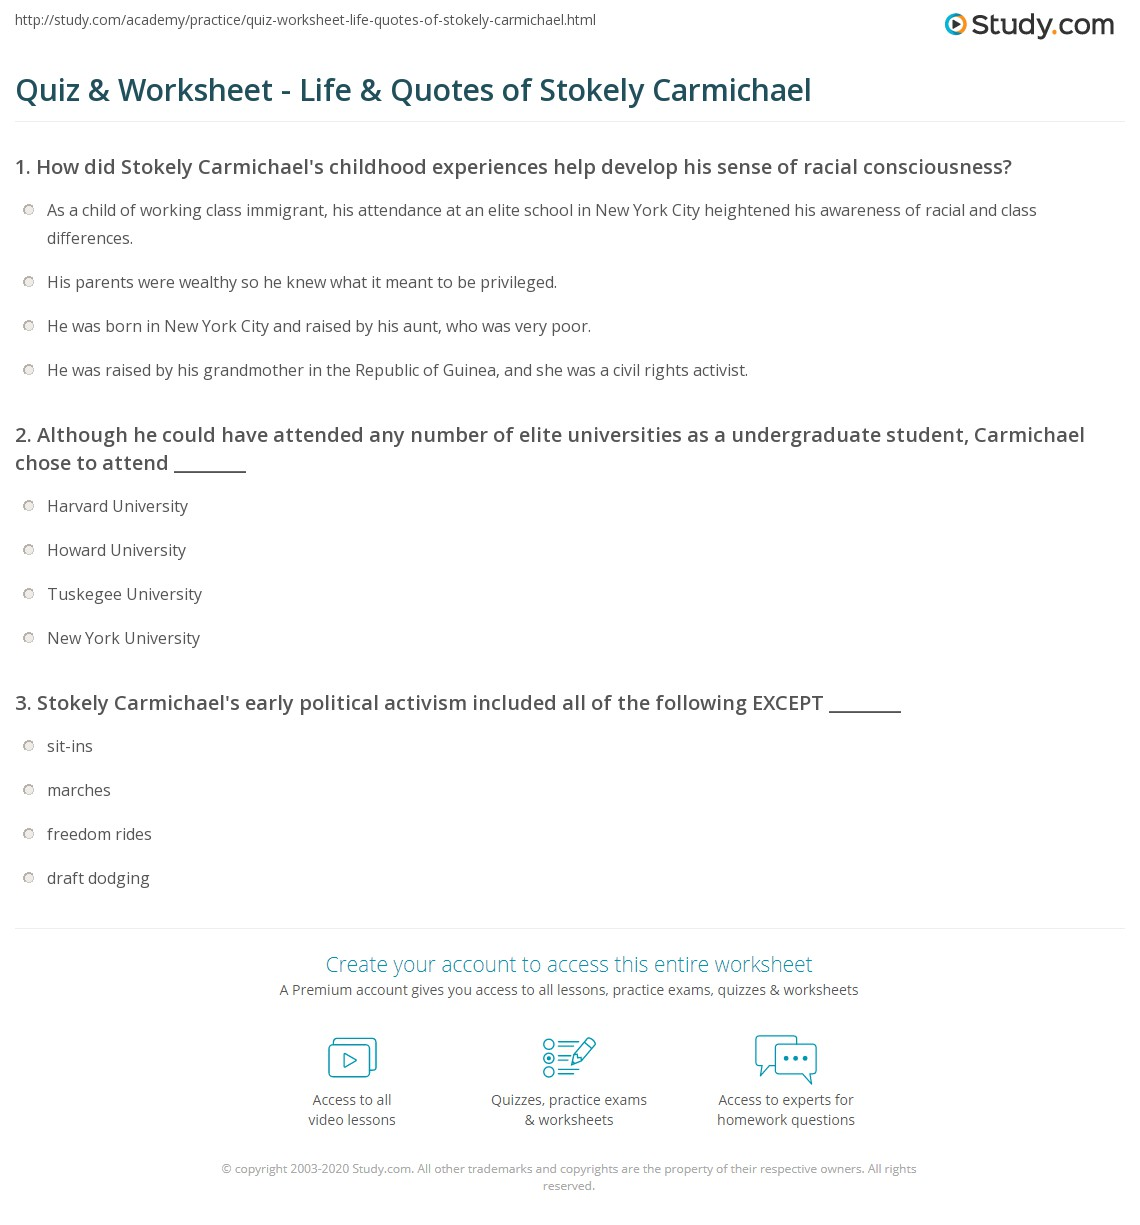 Quiz & Worksheet - Life & Quotes of Stokely Carmichael